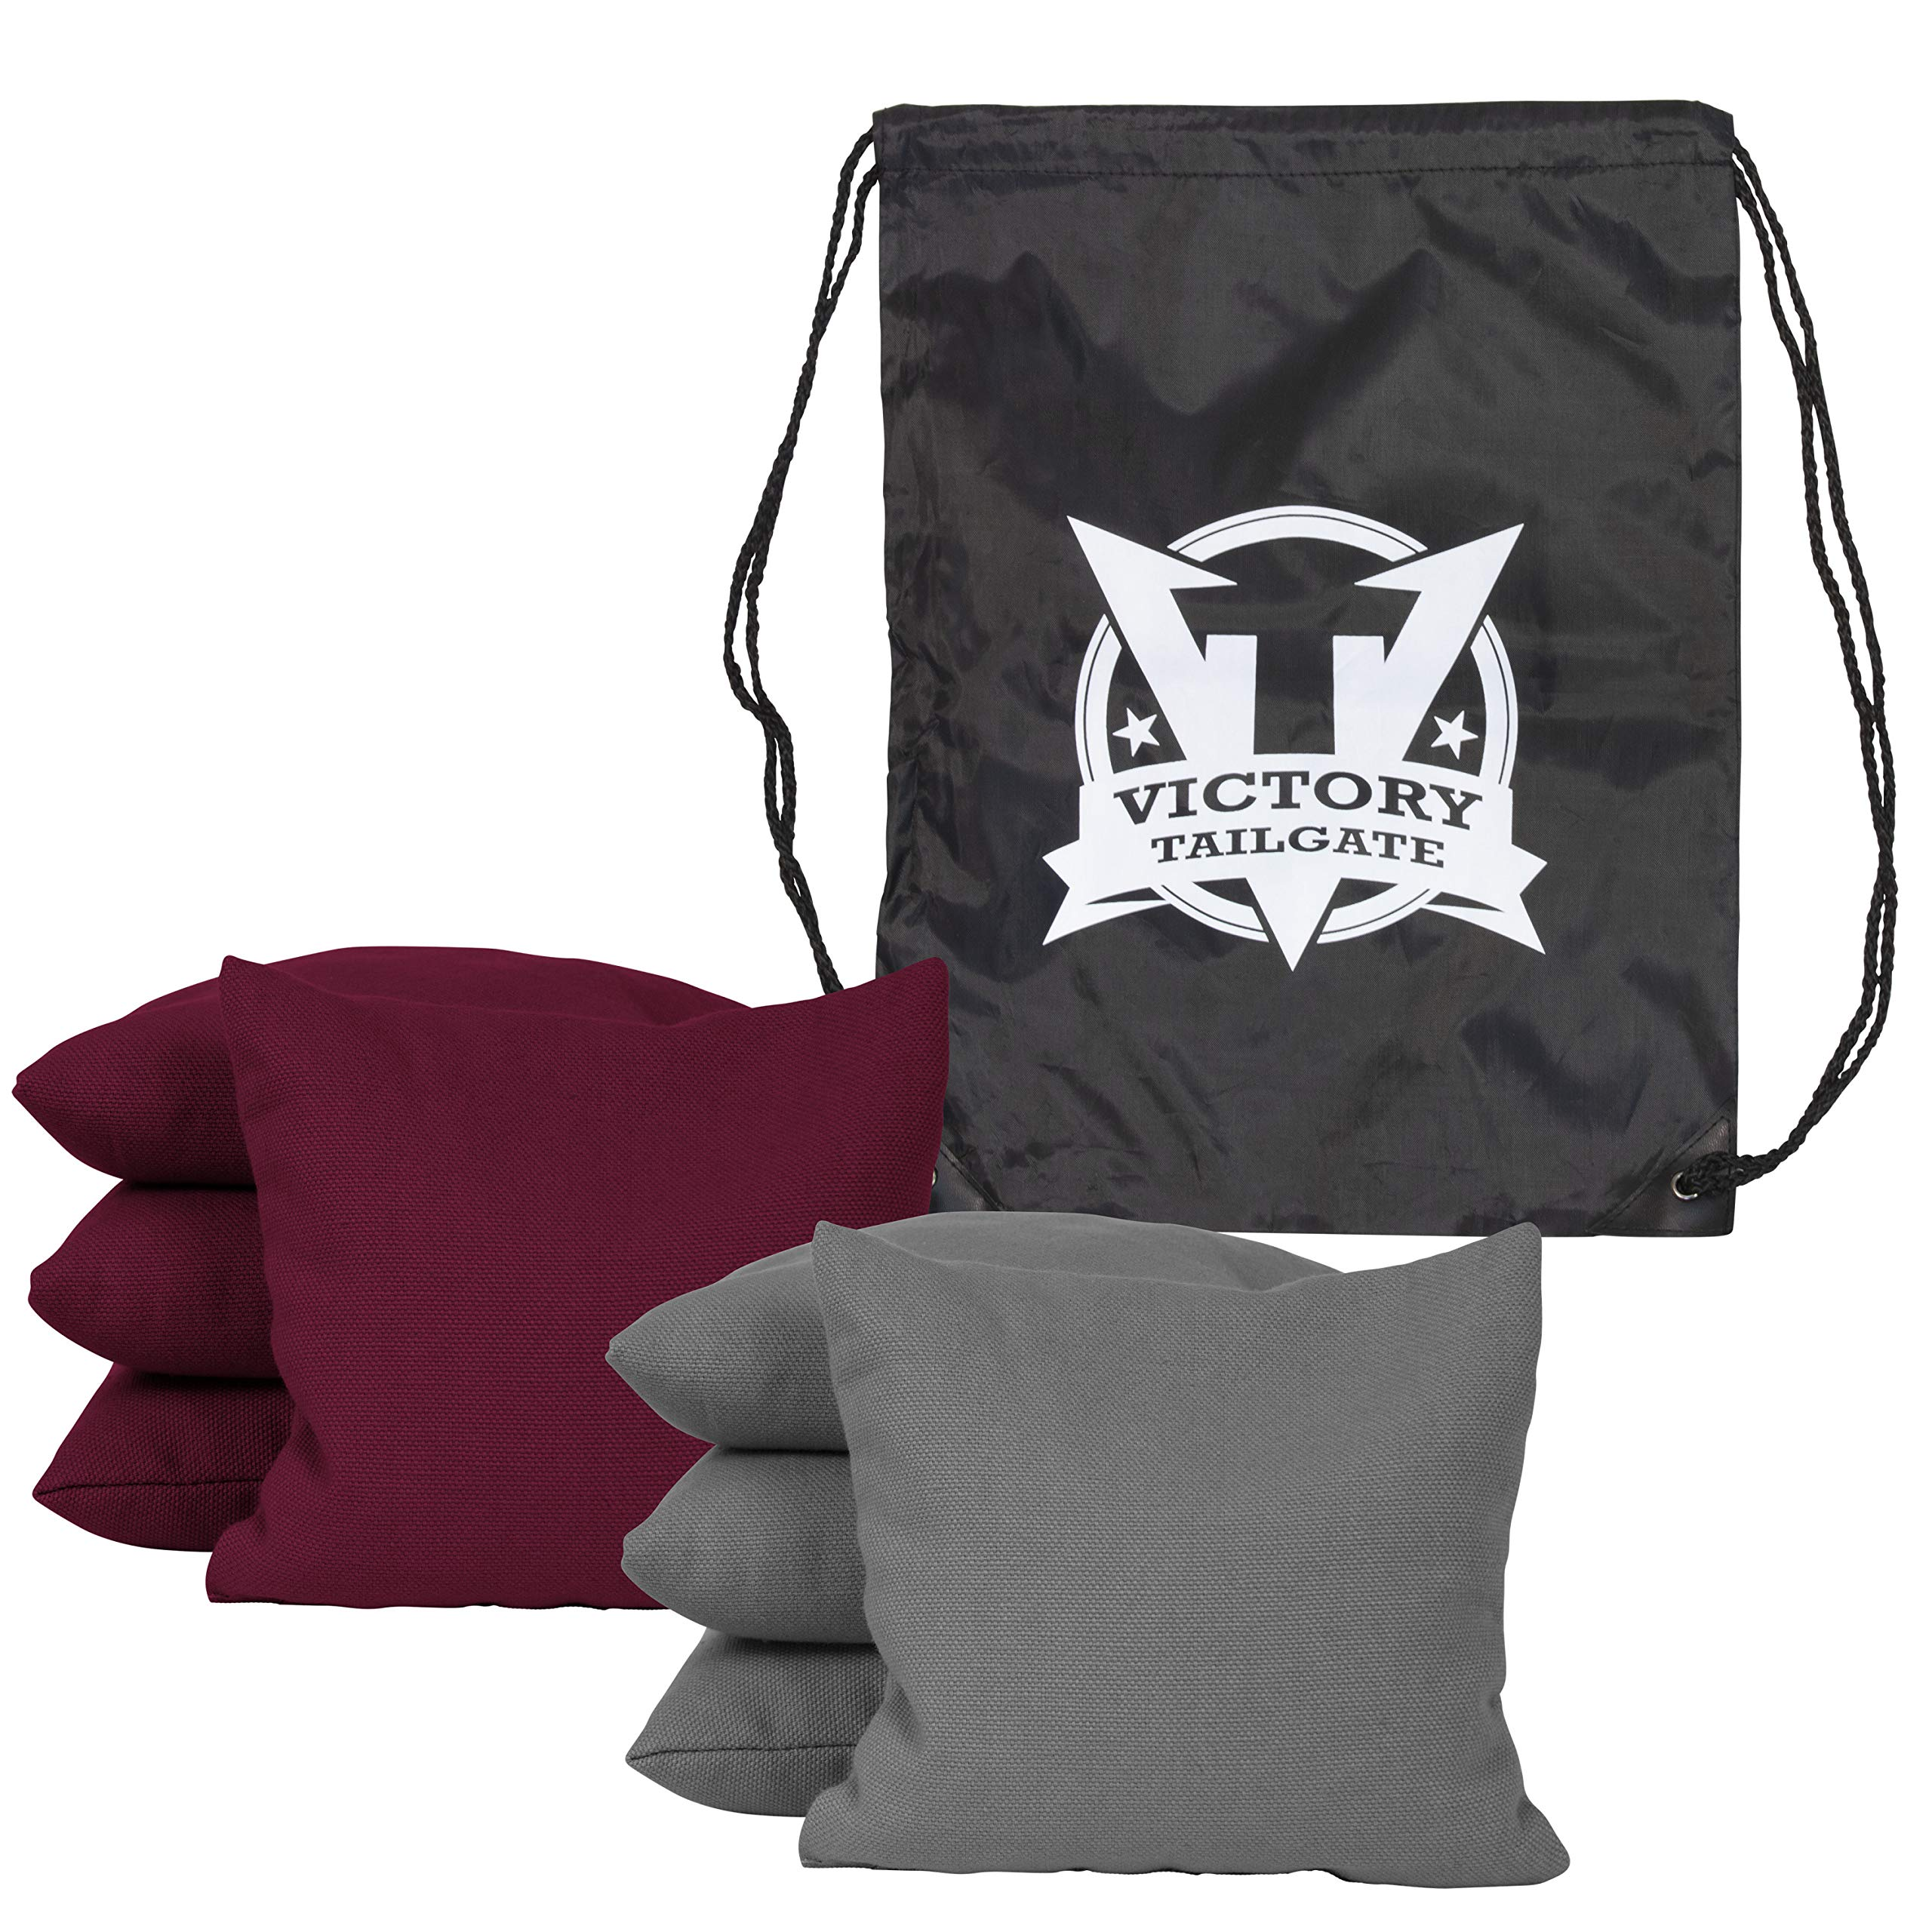 Victory Tailgate 8 Colored Corn Filled Regulation Cornhole Bags with Drawstring Pack (4 Gray, 4 Burgundy)